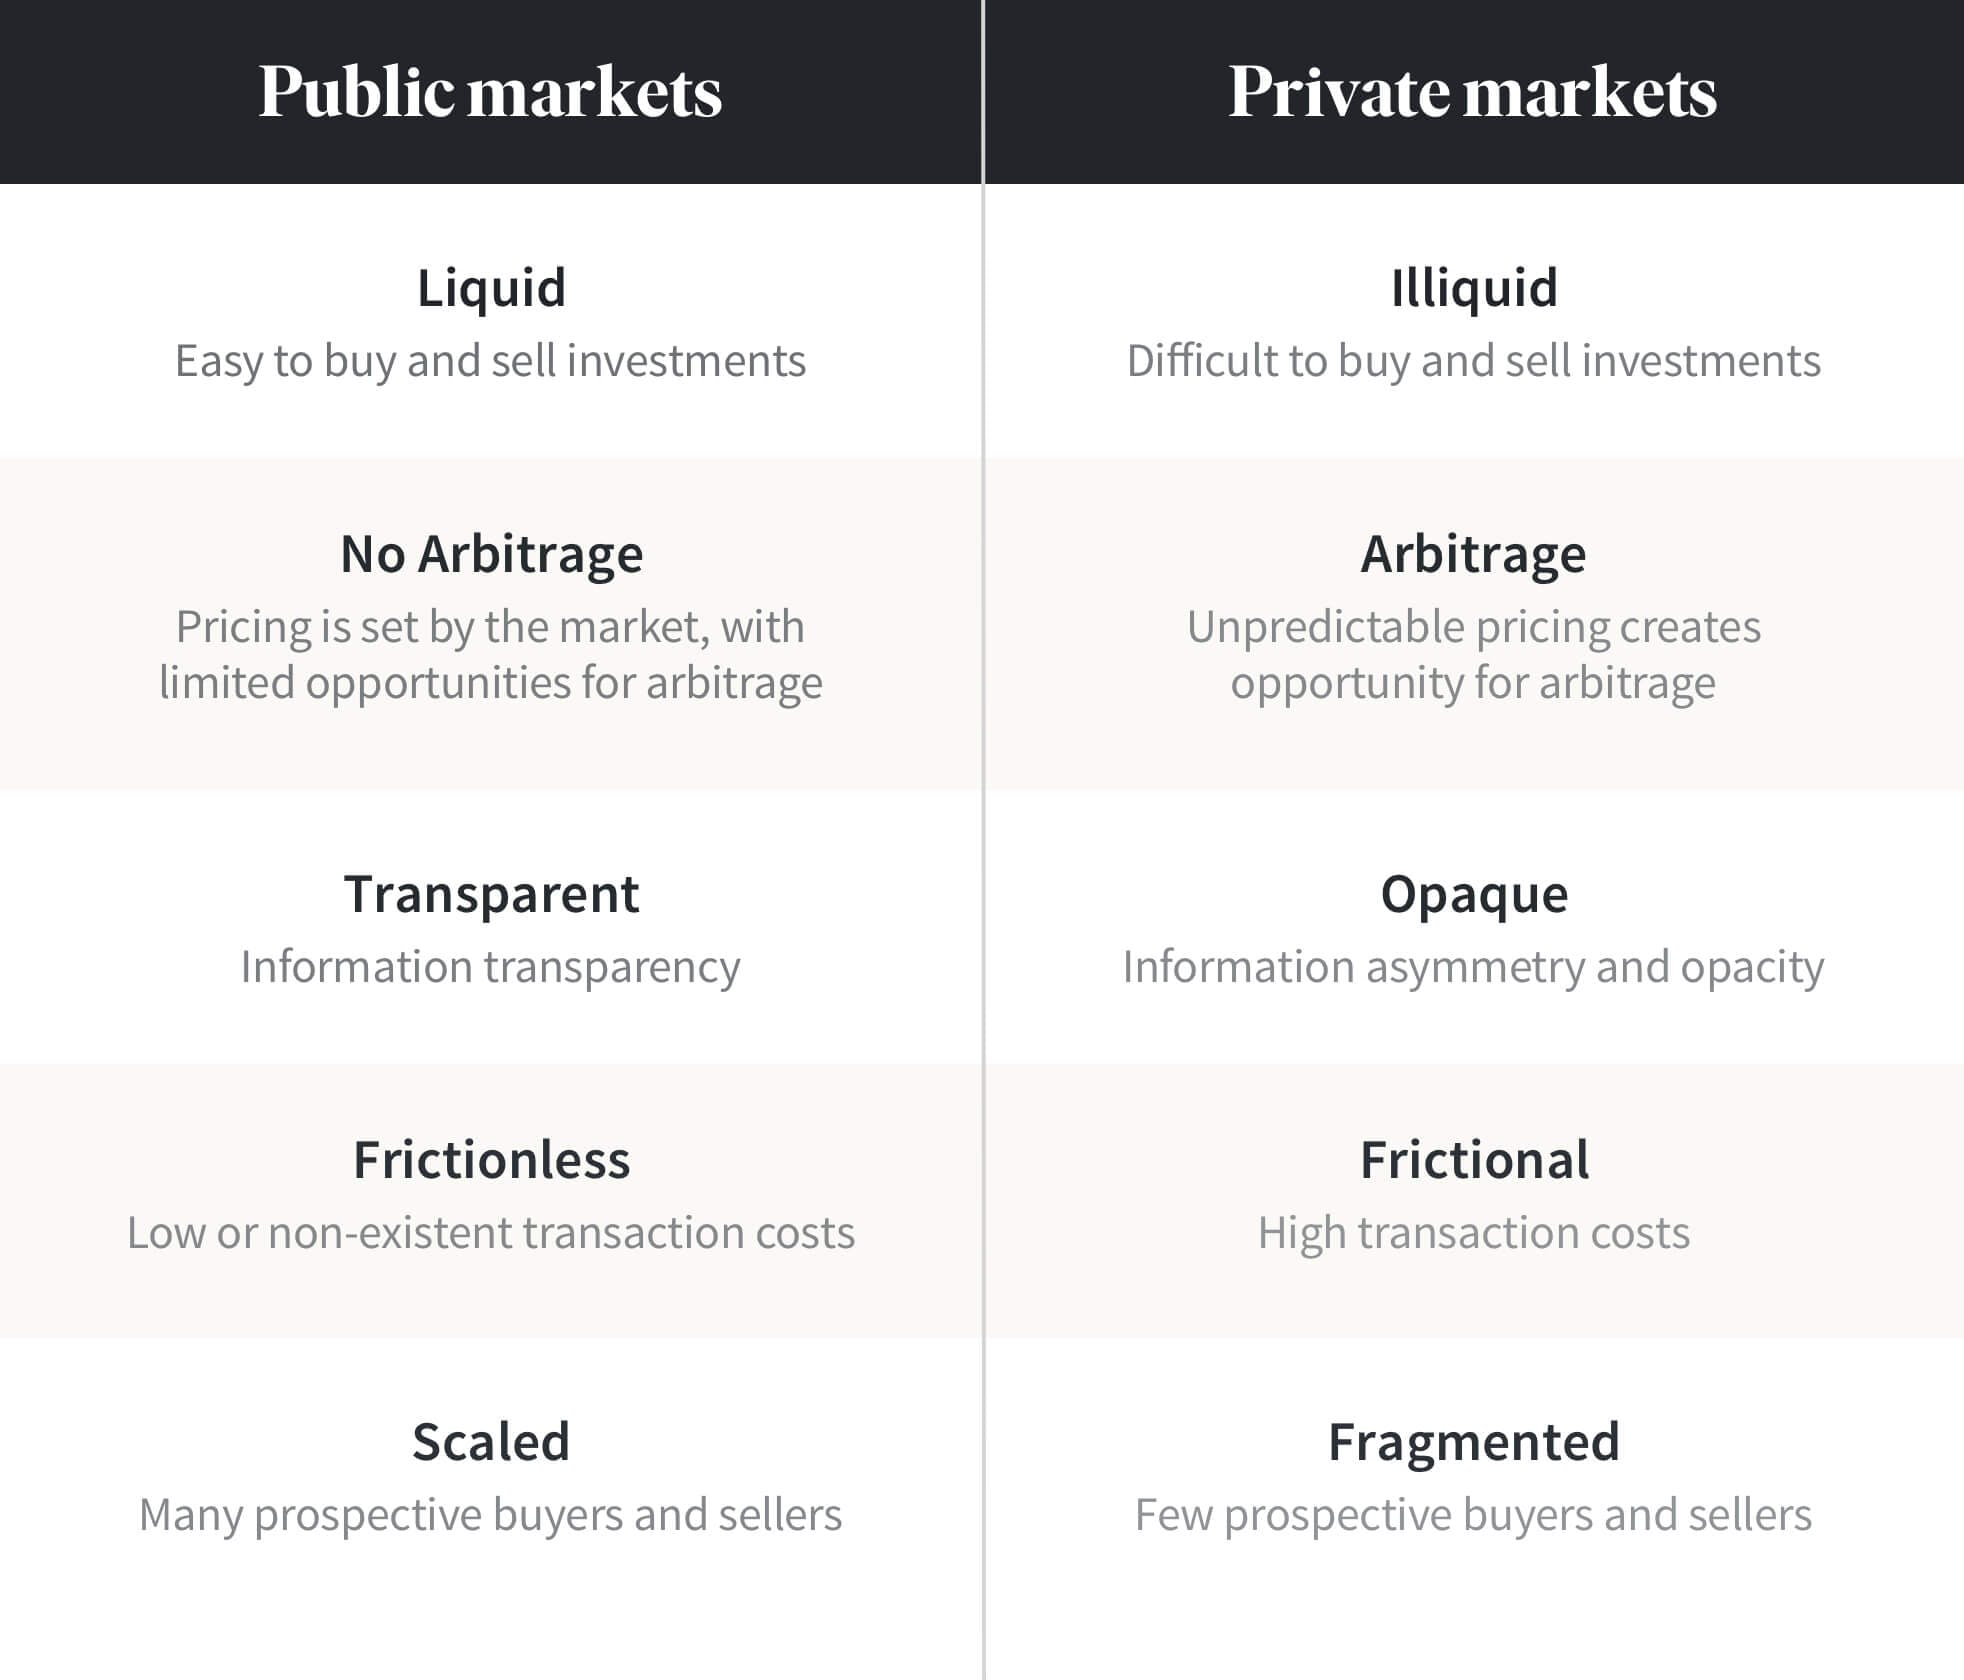 private-market-vs-public-market-investments